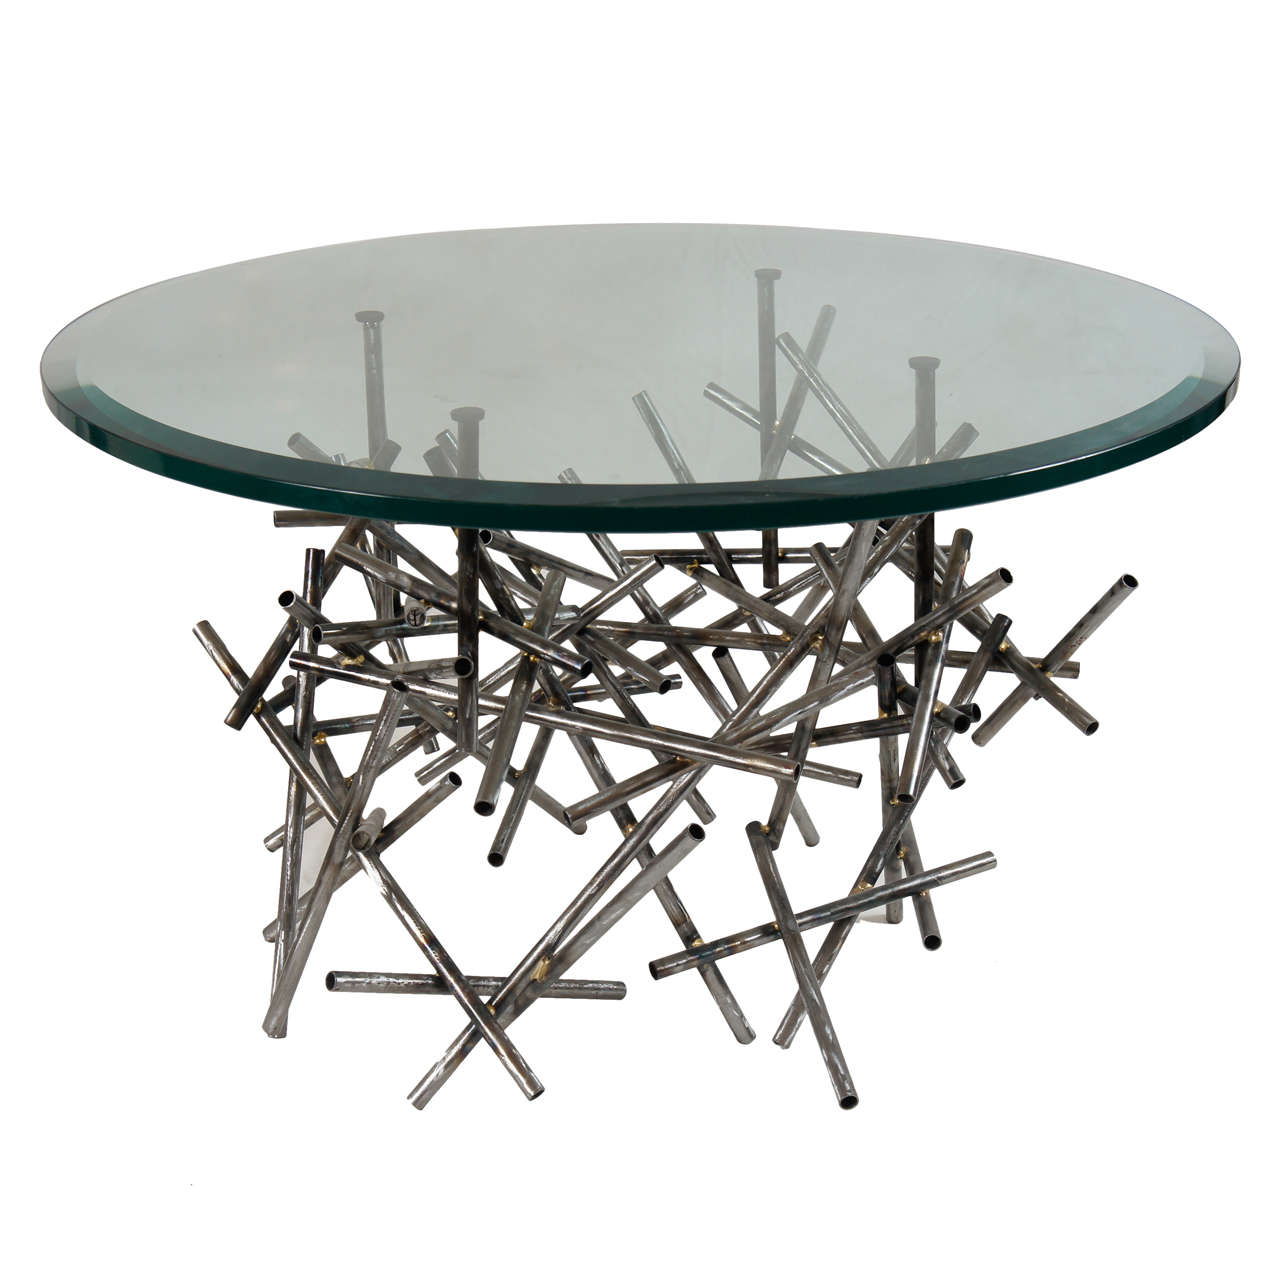 Original Custom Sculptural Coffee Table In Textured Steel By Lou Blass For Sale At 1stdibs